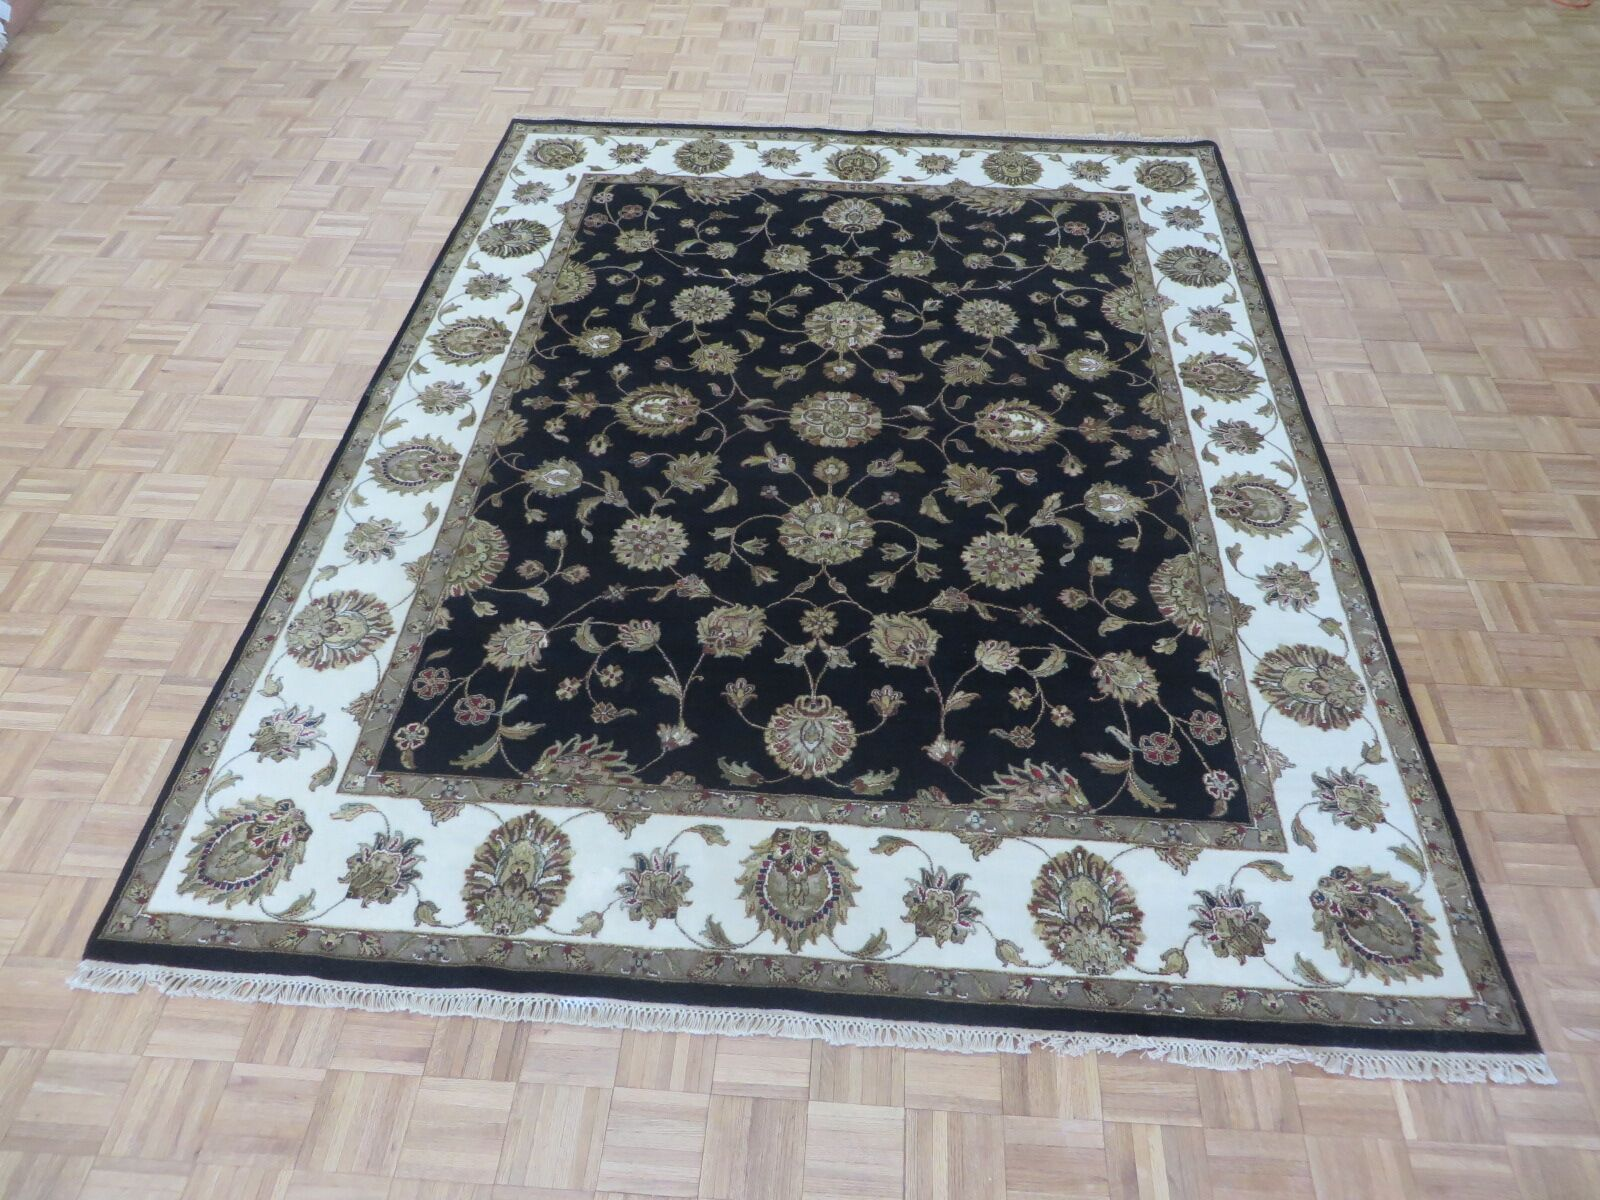 One-of-a-Kind Rhyne Hand-Knotted Wool Black Area Rug Rug Size: Rectangle 8' x 10'2